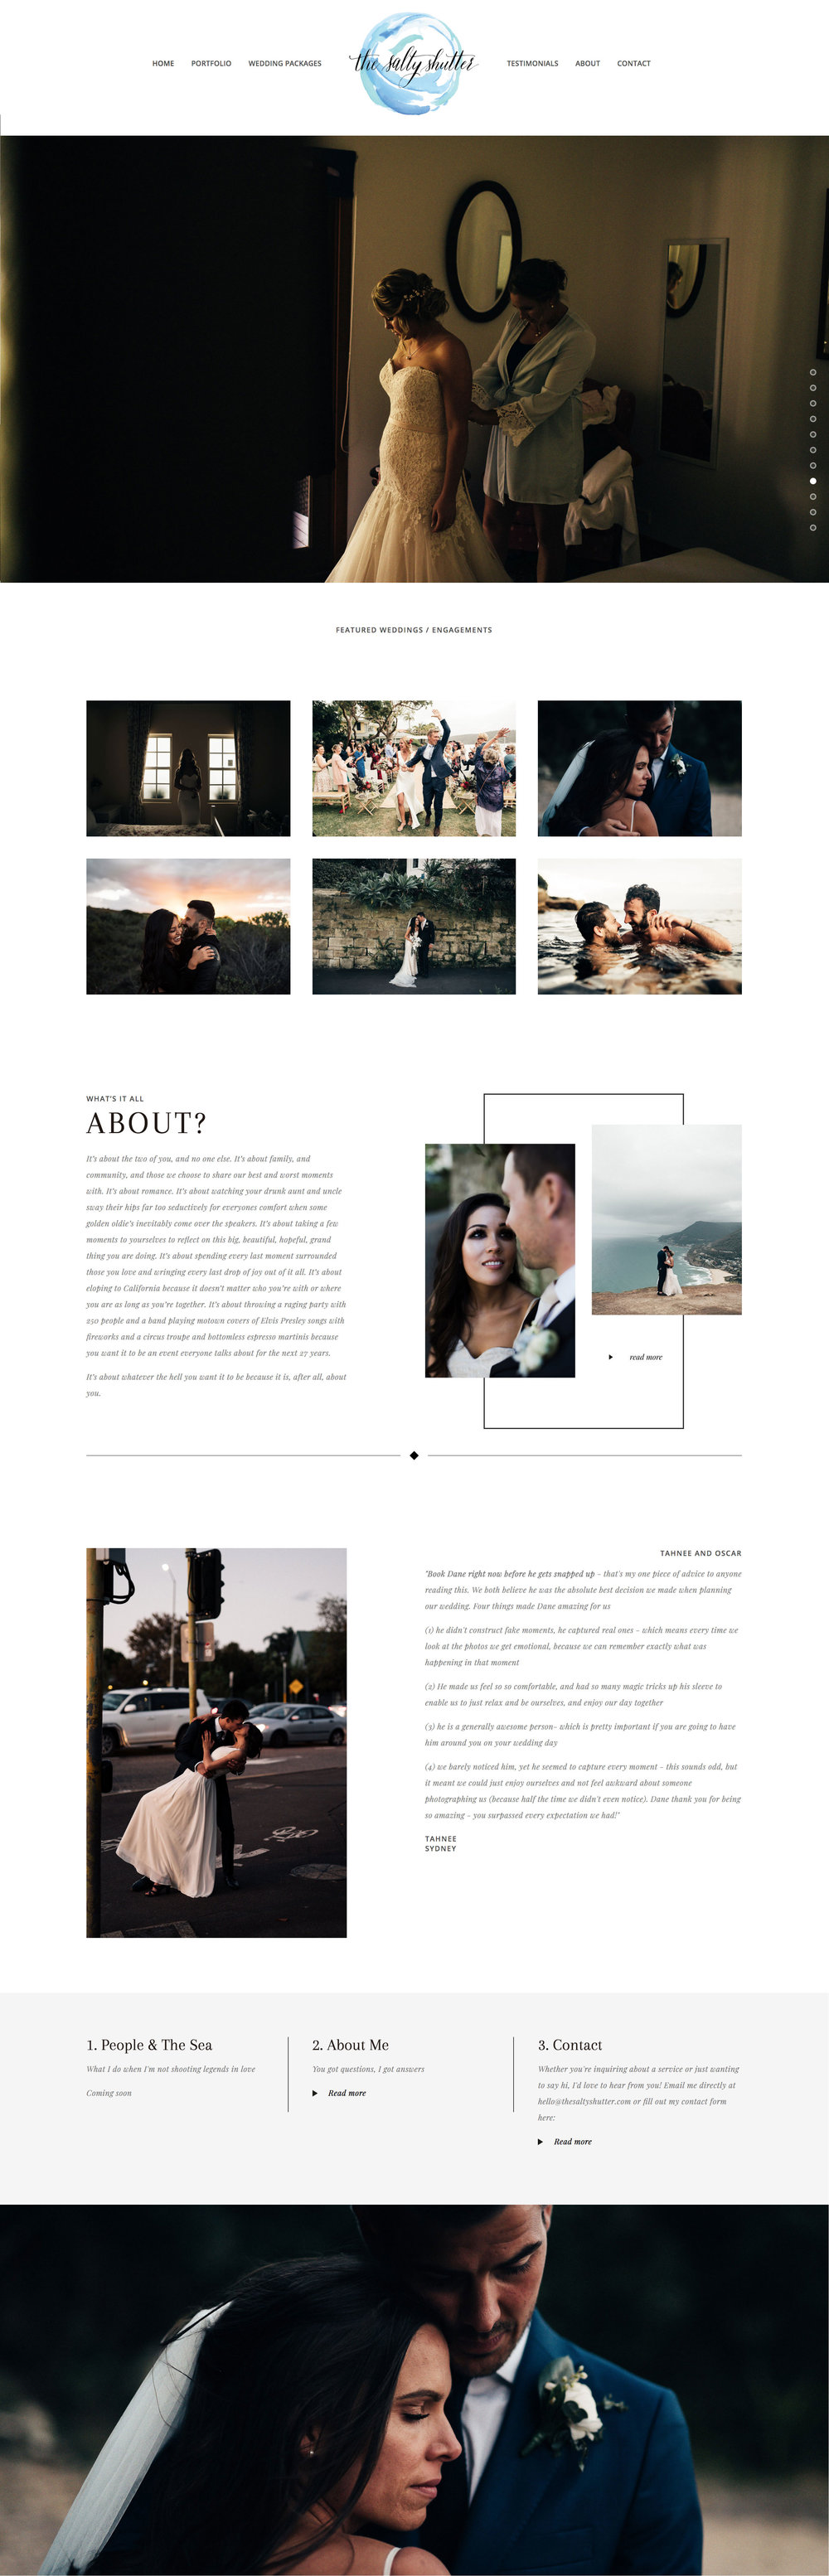 thesaltyshutter-squarespace.jpg